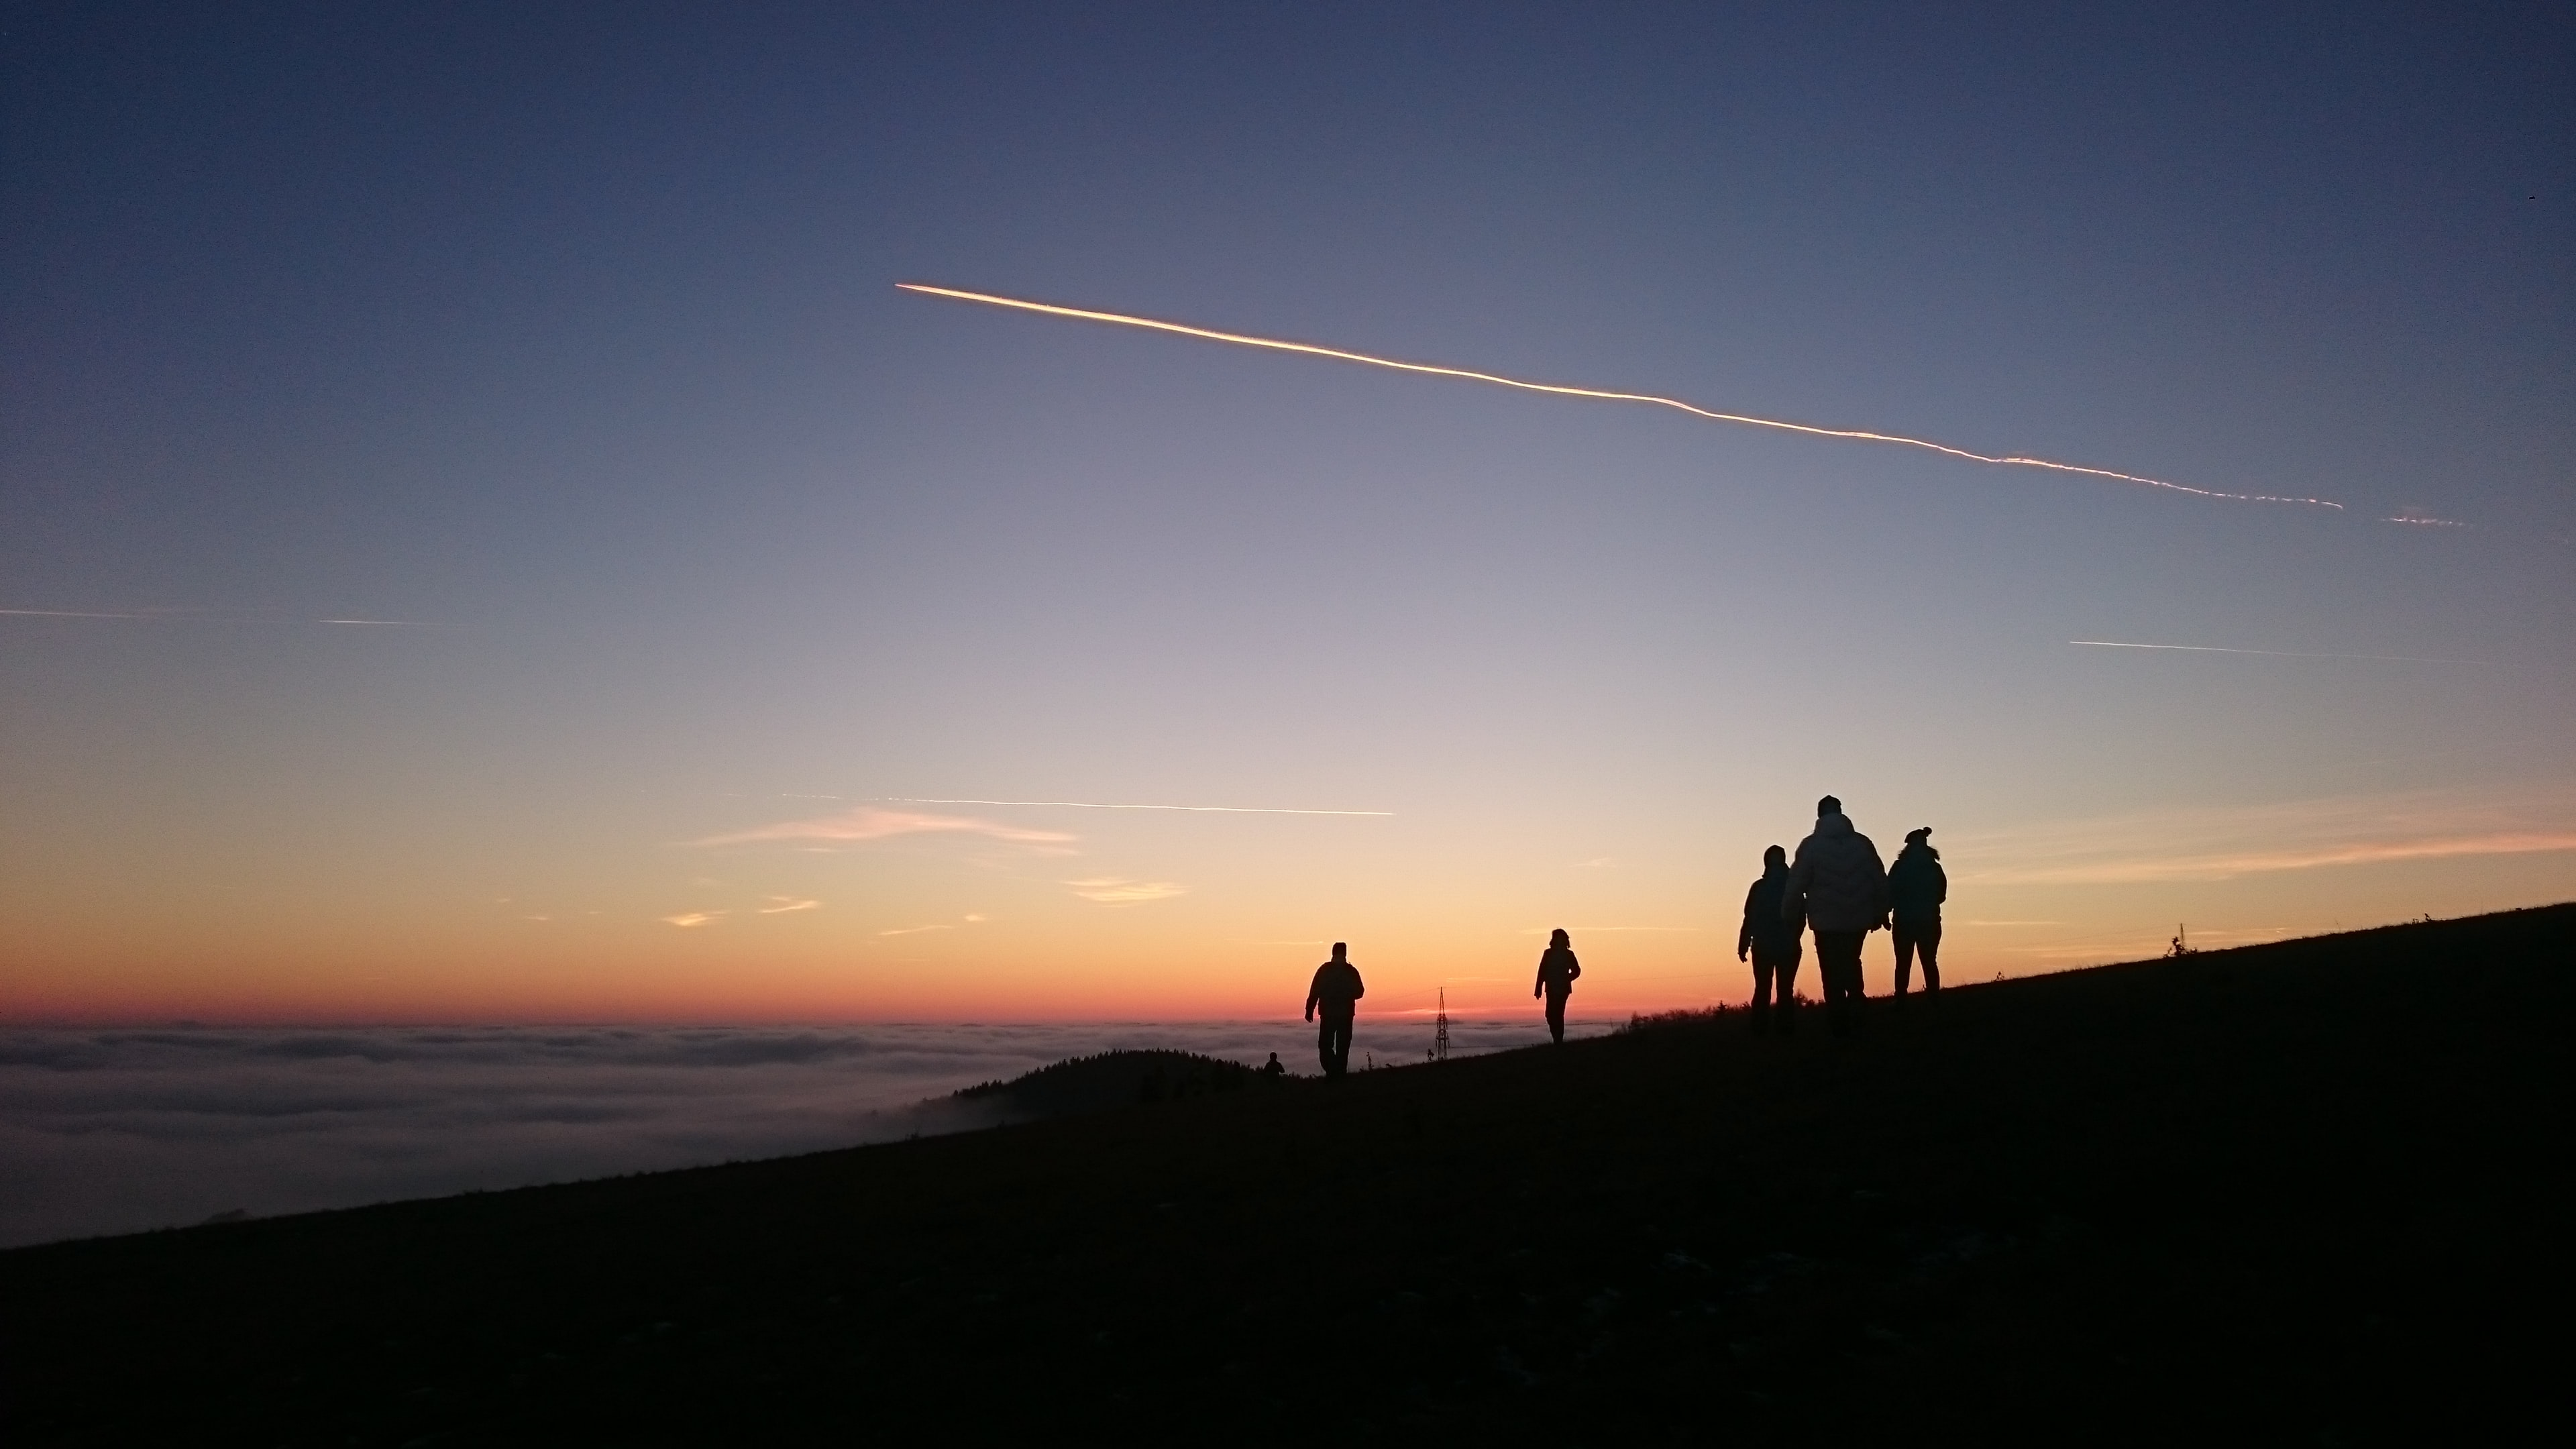 silhouette photo of group of five people walking on mountain during sunset